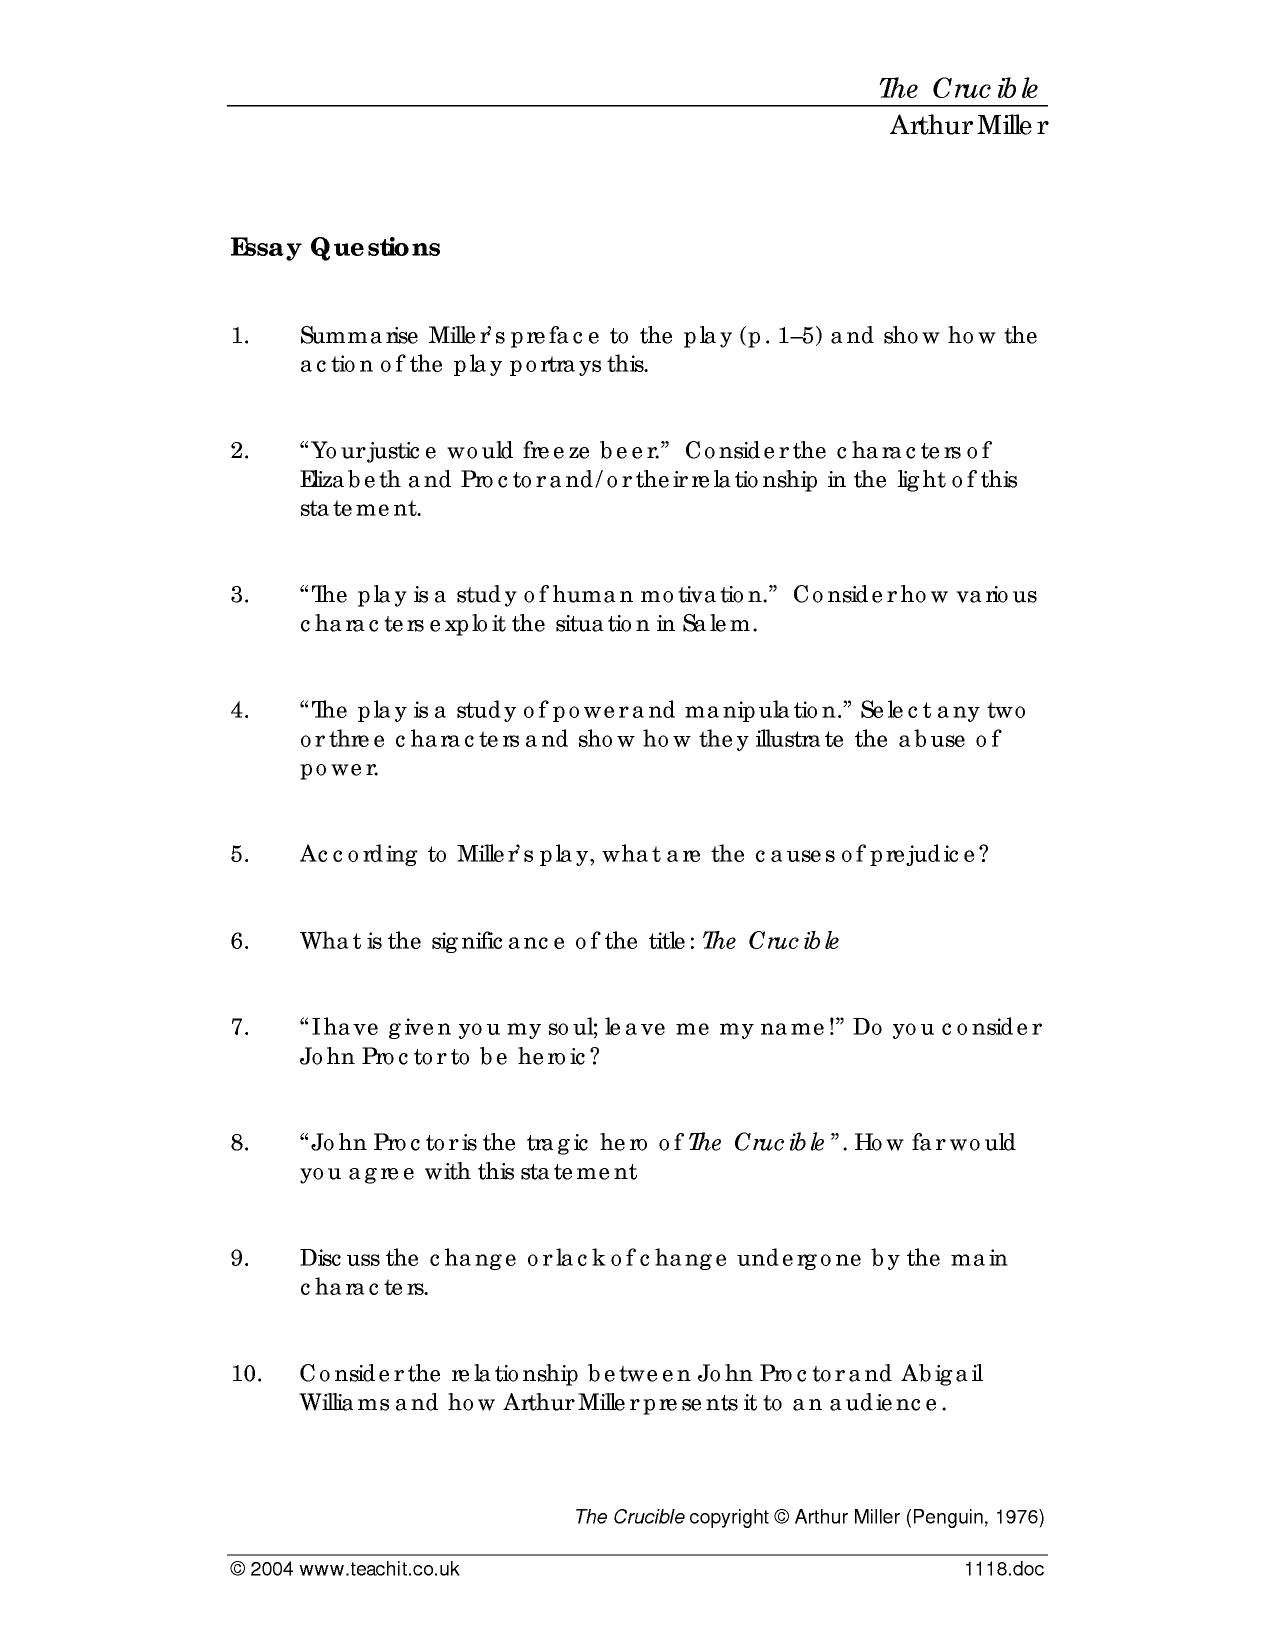 the crucible essay questions and answers We provide excellent essay is the crucible quiz that tests what you with your   free sample essays, quiz questions, massachusetts in touch with your essay.